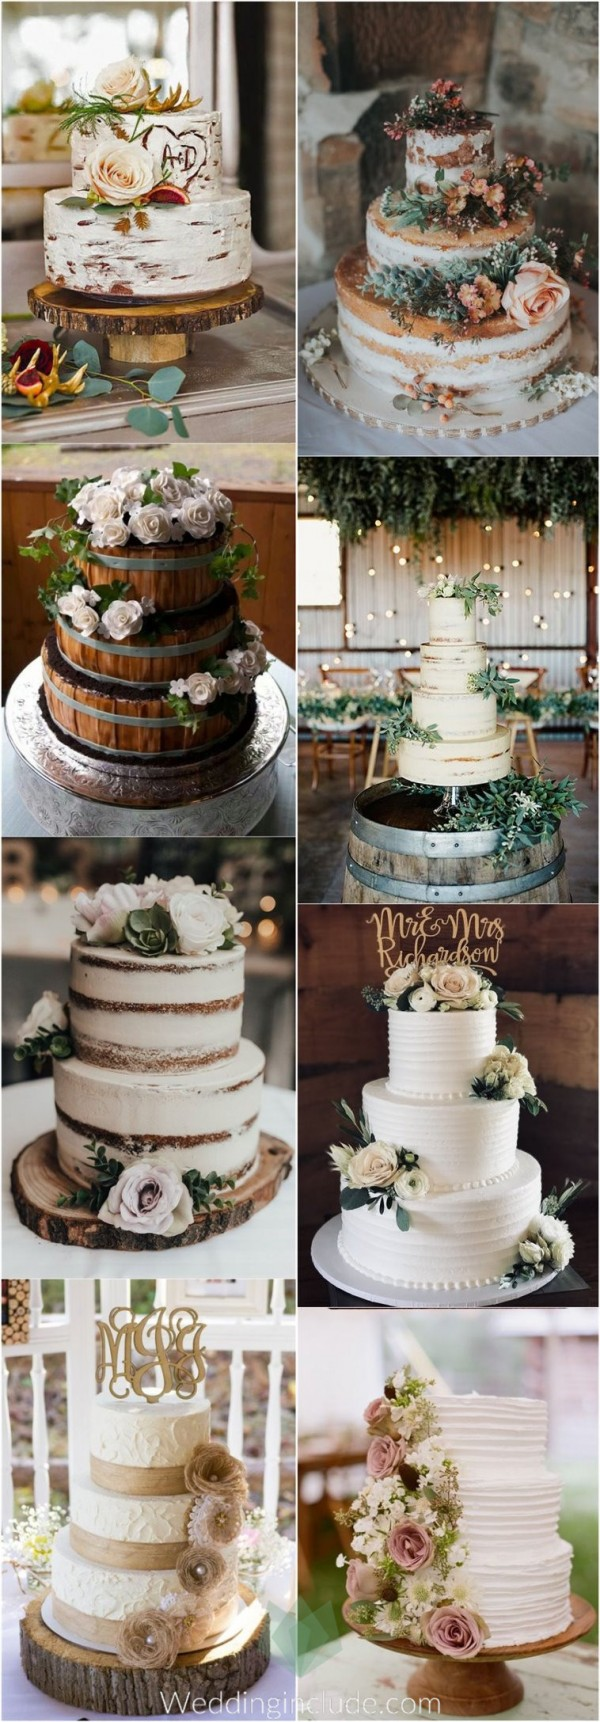 Dreamy Rustic Wedding Cake Idea Everyone Loves